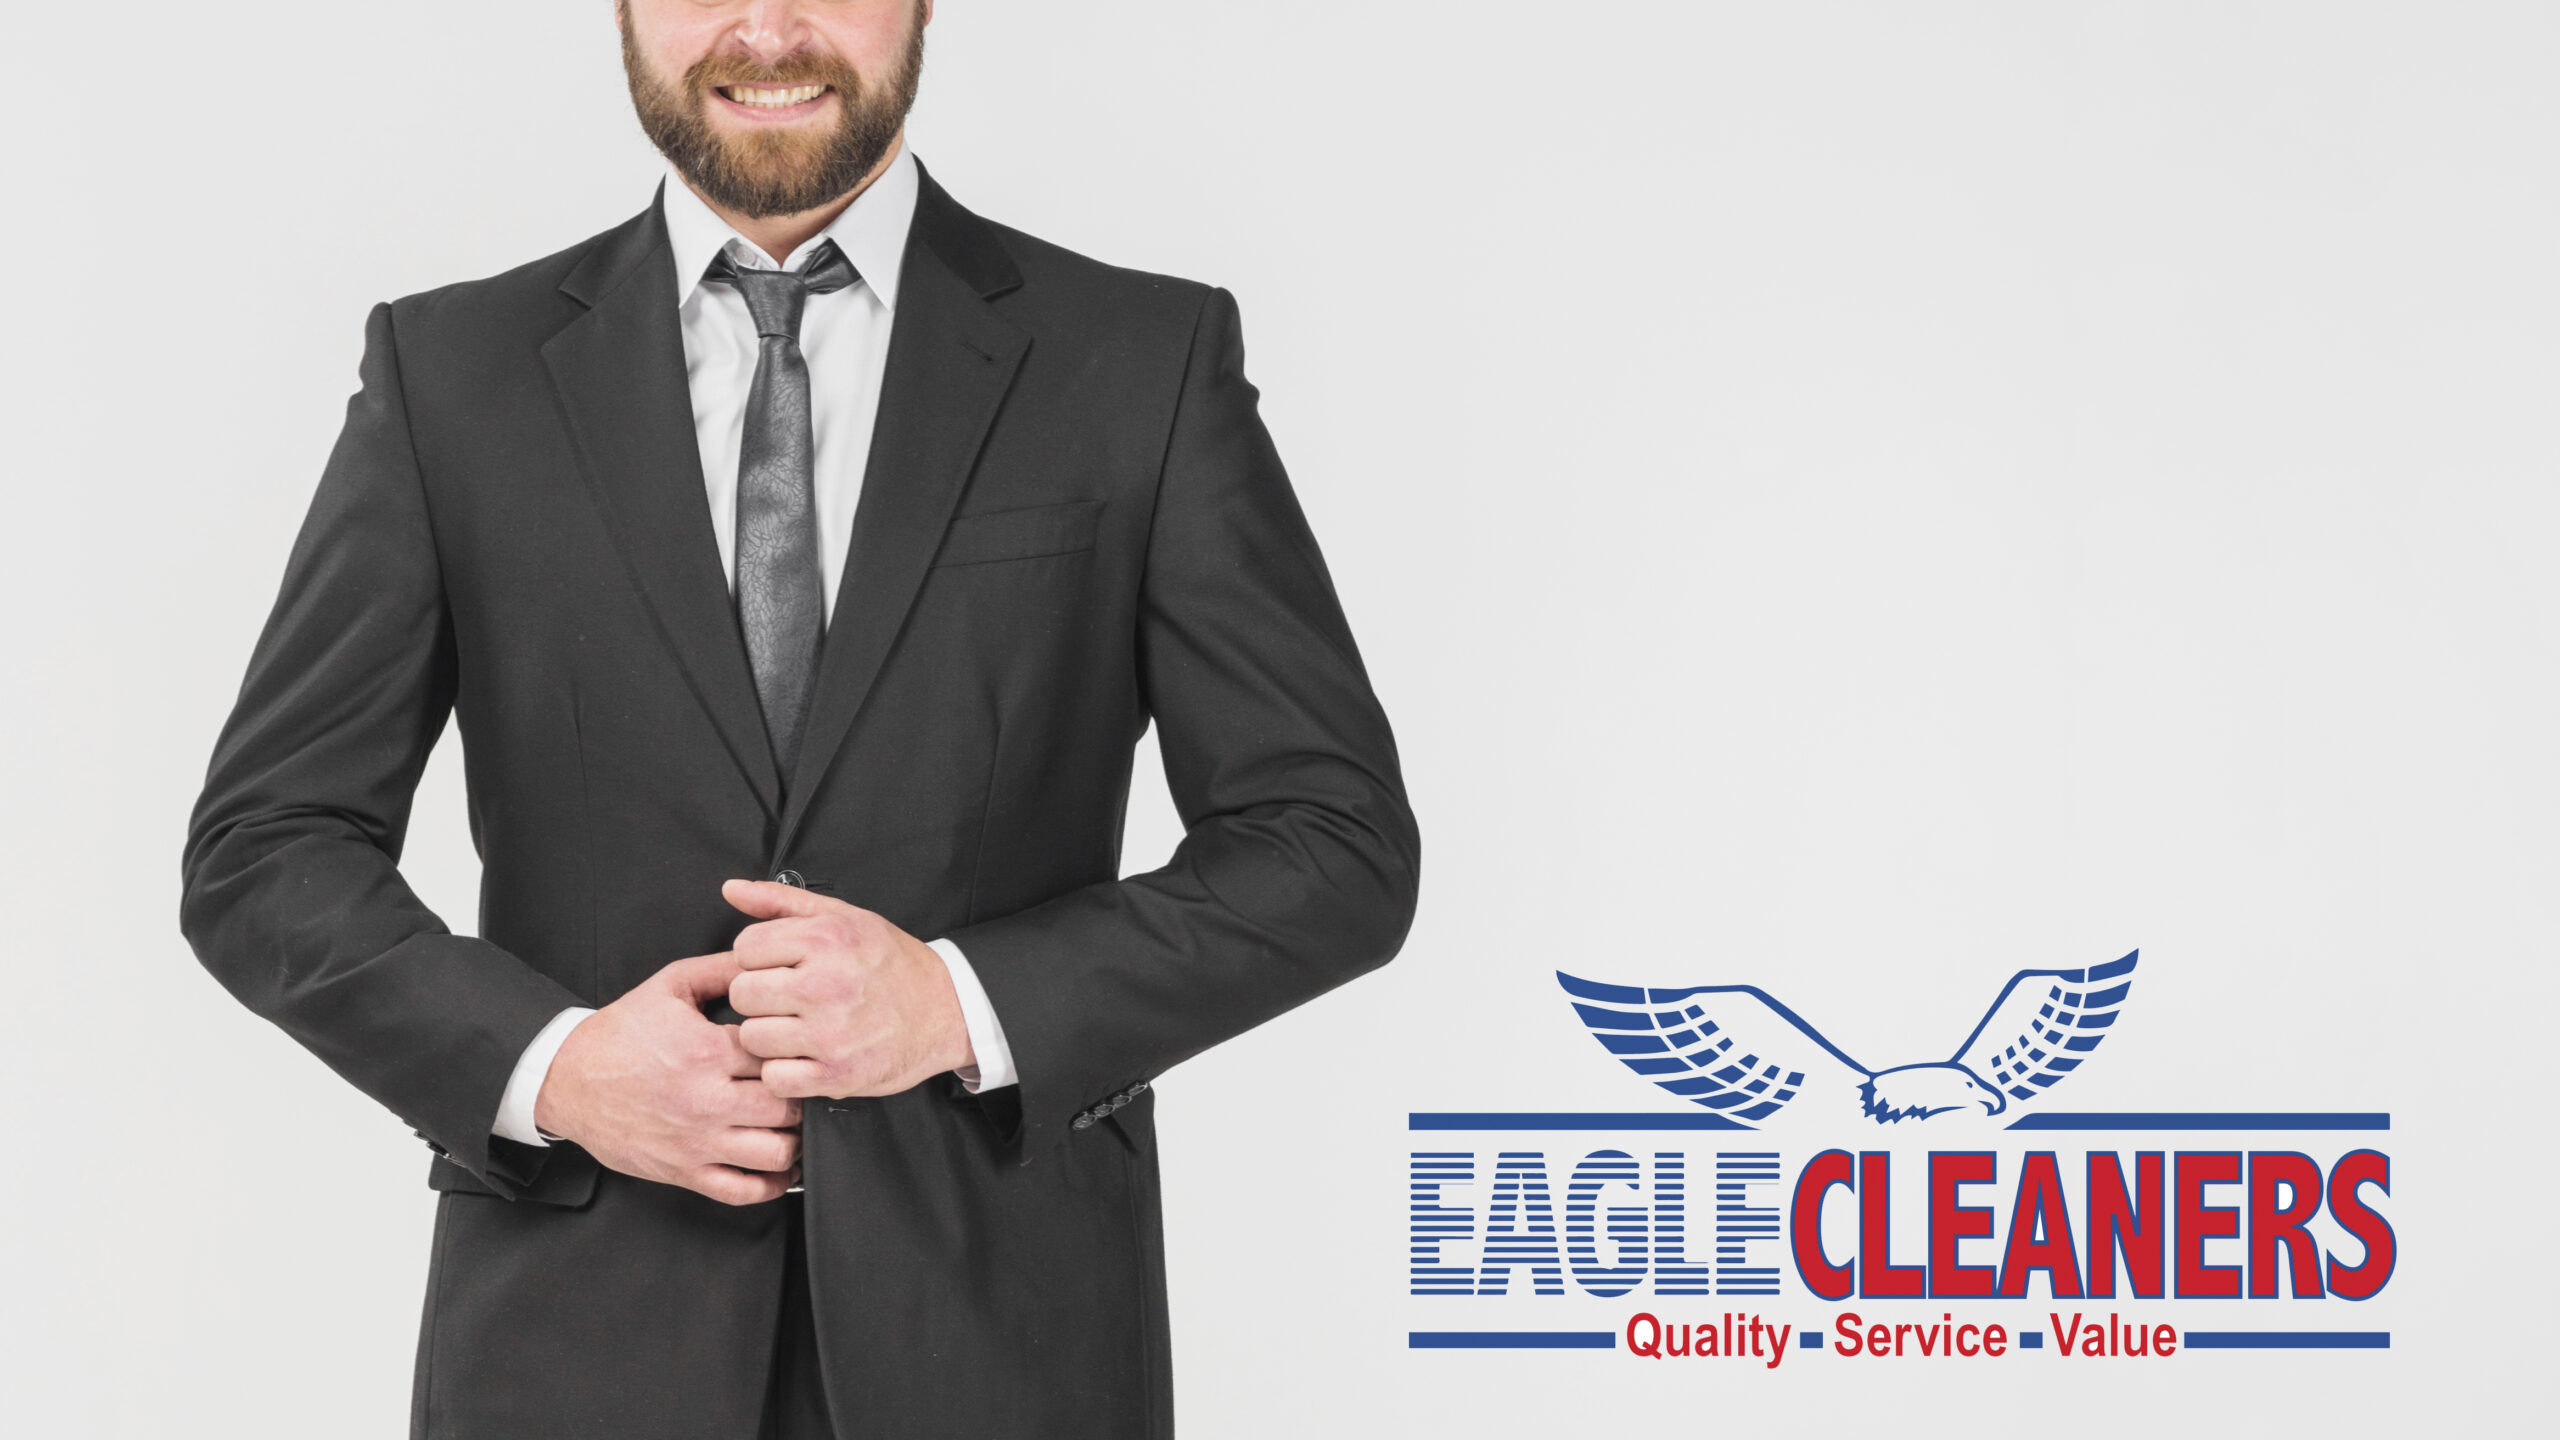 Dry Cleaning Suits – Do's & Don'ts Eagle Cleaners knows how important suit care is, which is why we're known for ours. We understand the significance of finding the perfect suit…